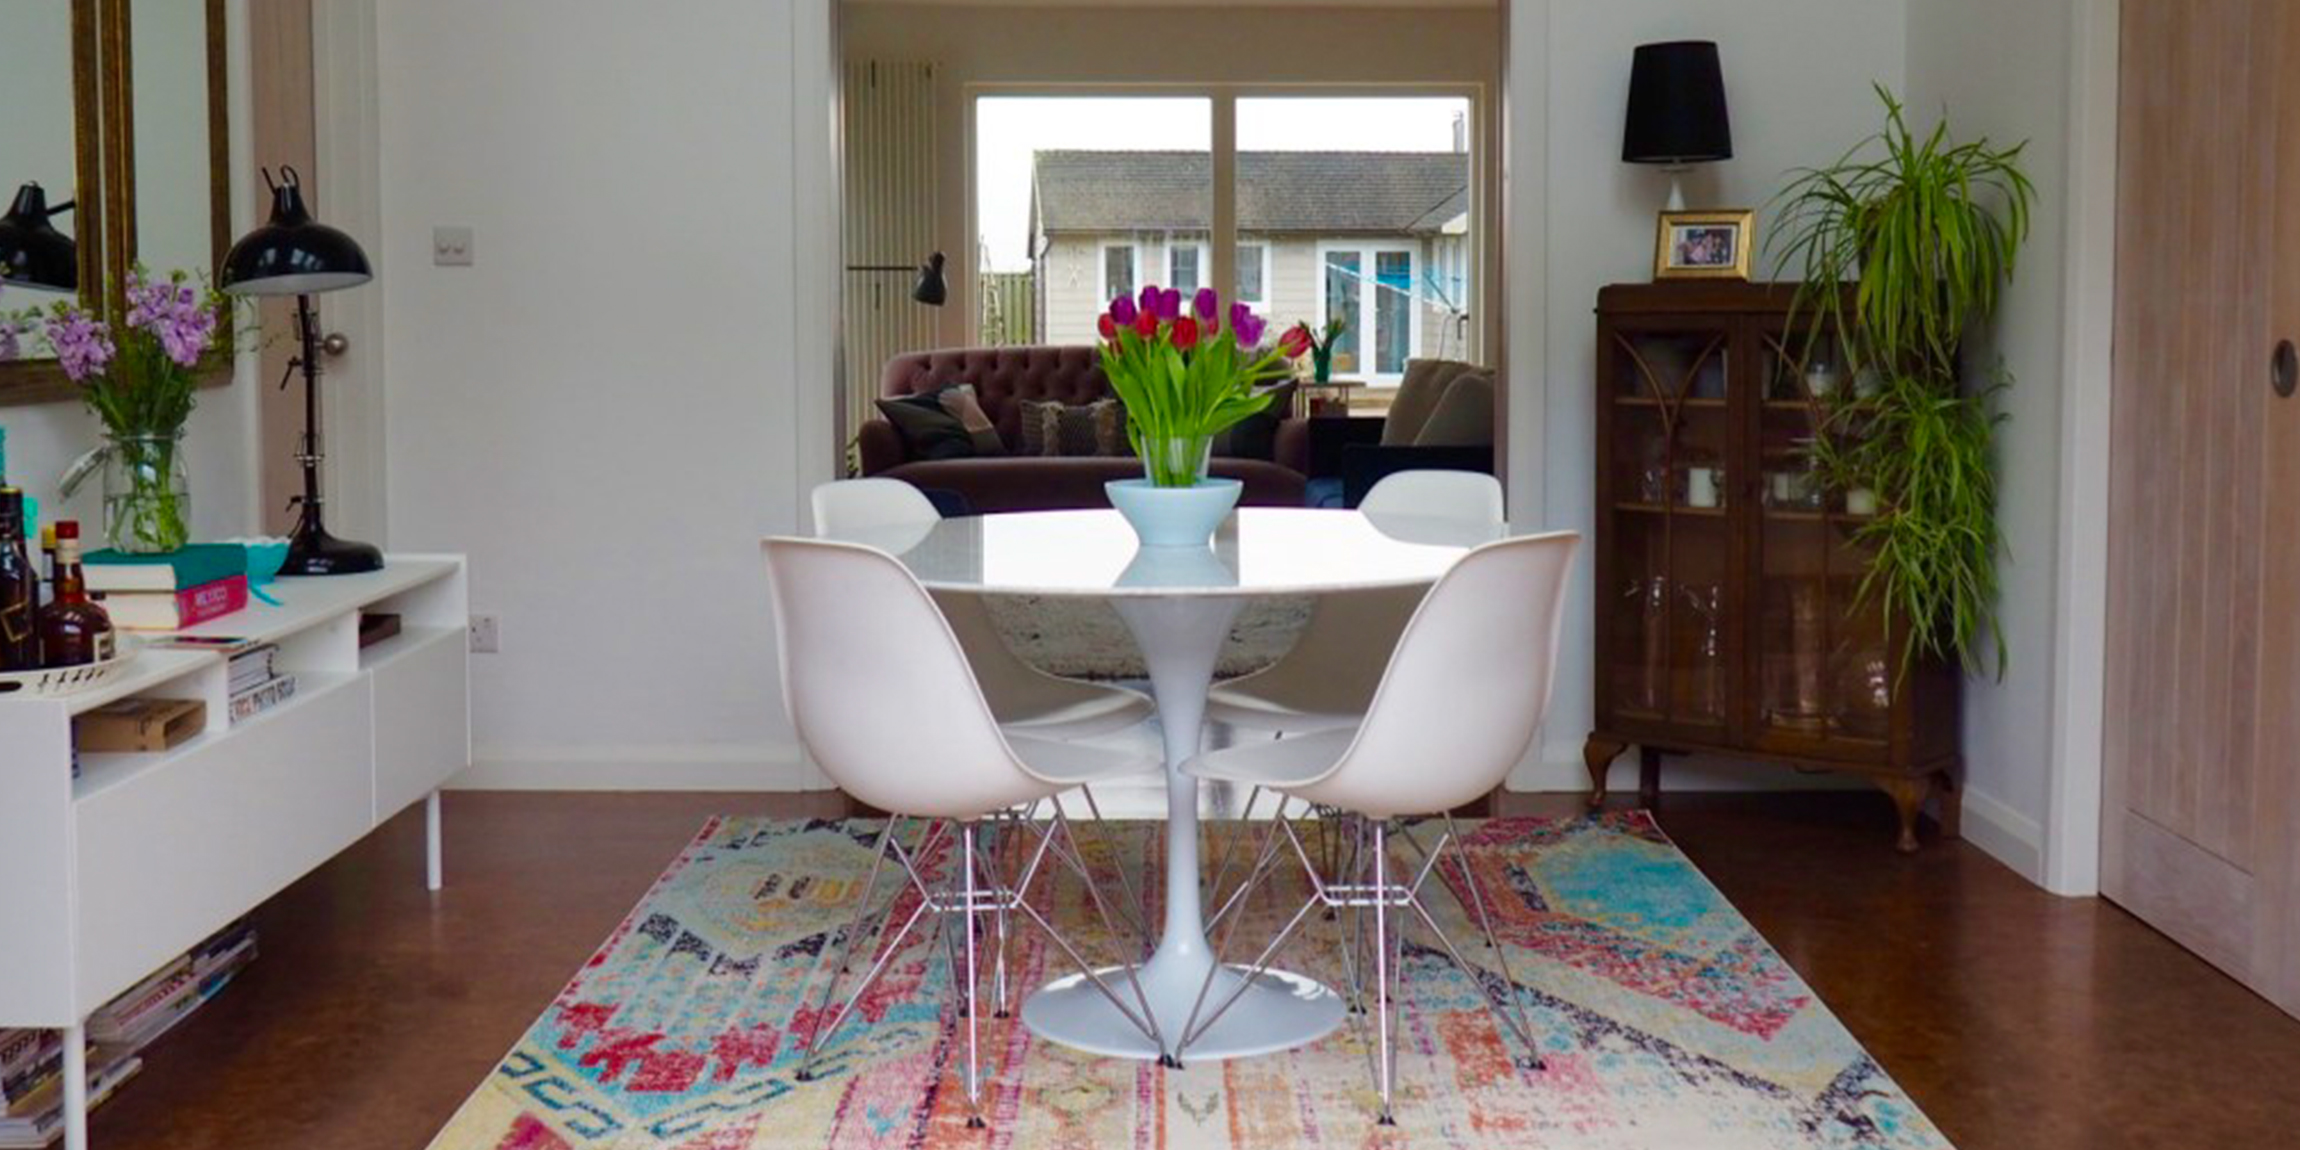 Eero Saarinen's Tulip Table design used in our customers home